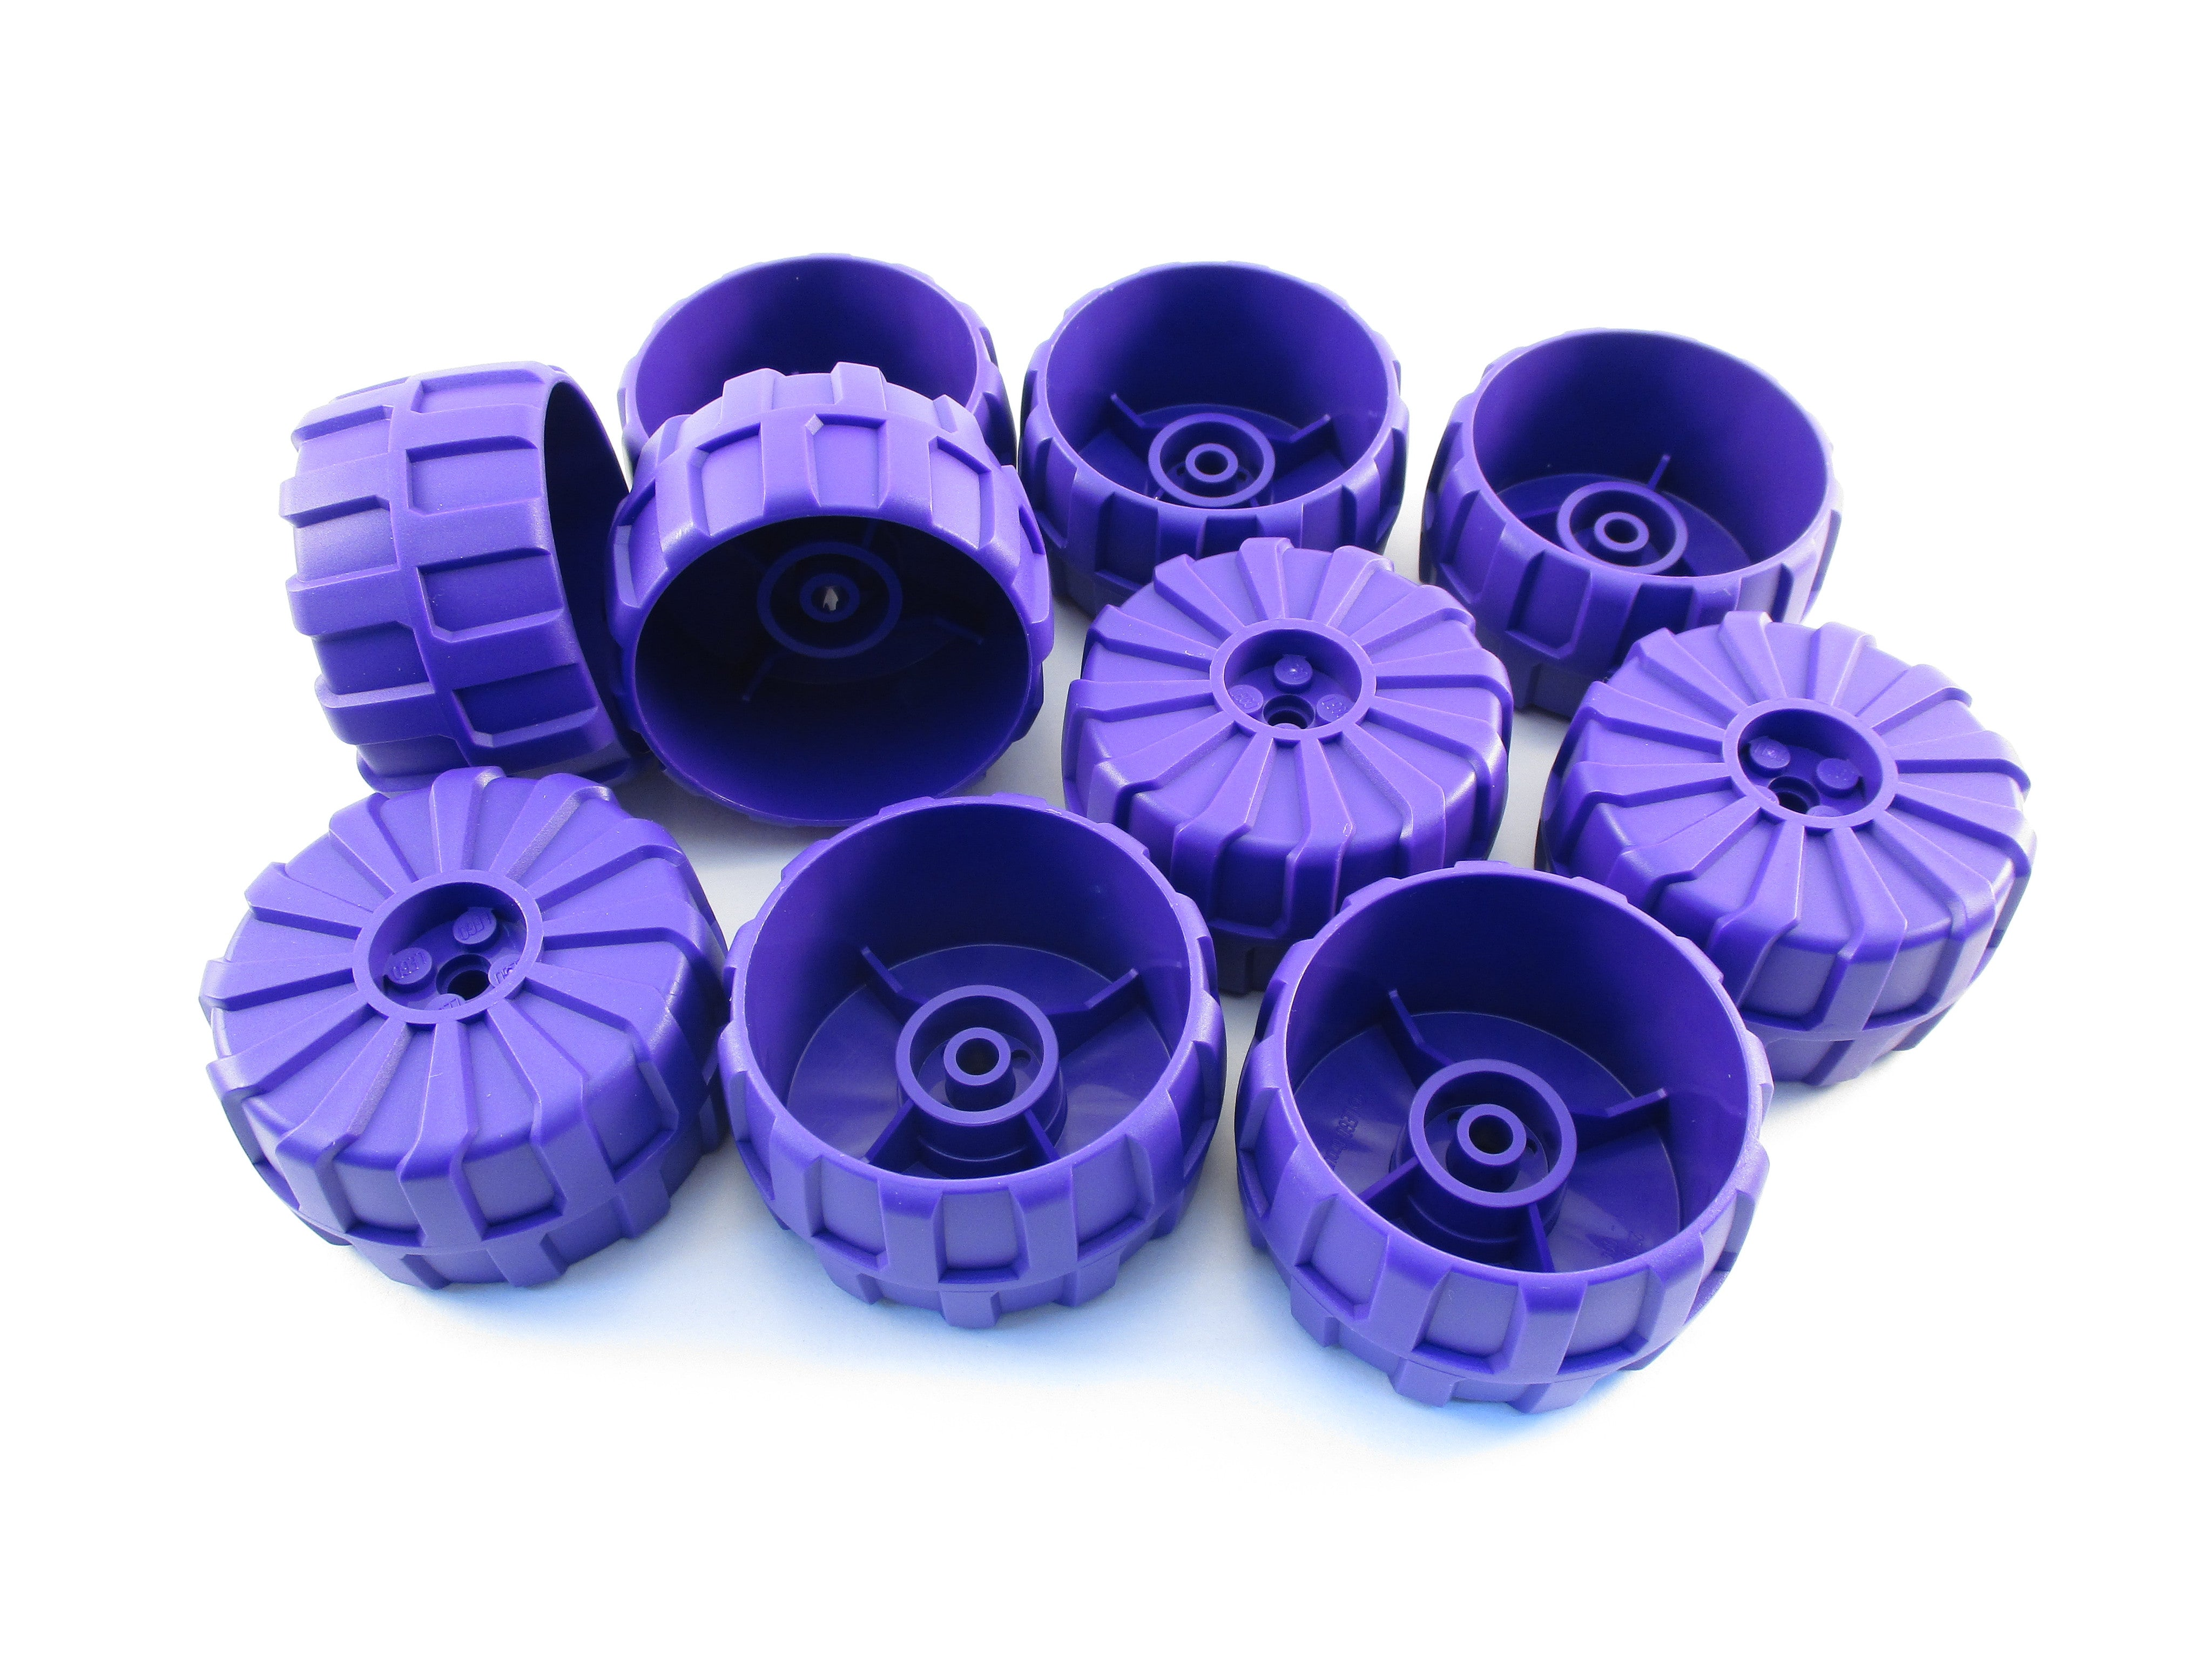 LEGO Dark Purple Wheel Hard Plastic Large 54mm D.x30 Lot of 10 Parts Pieces 2515